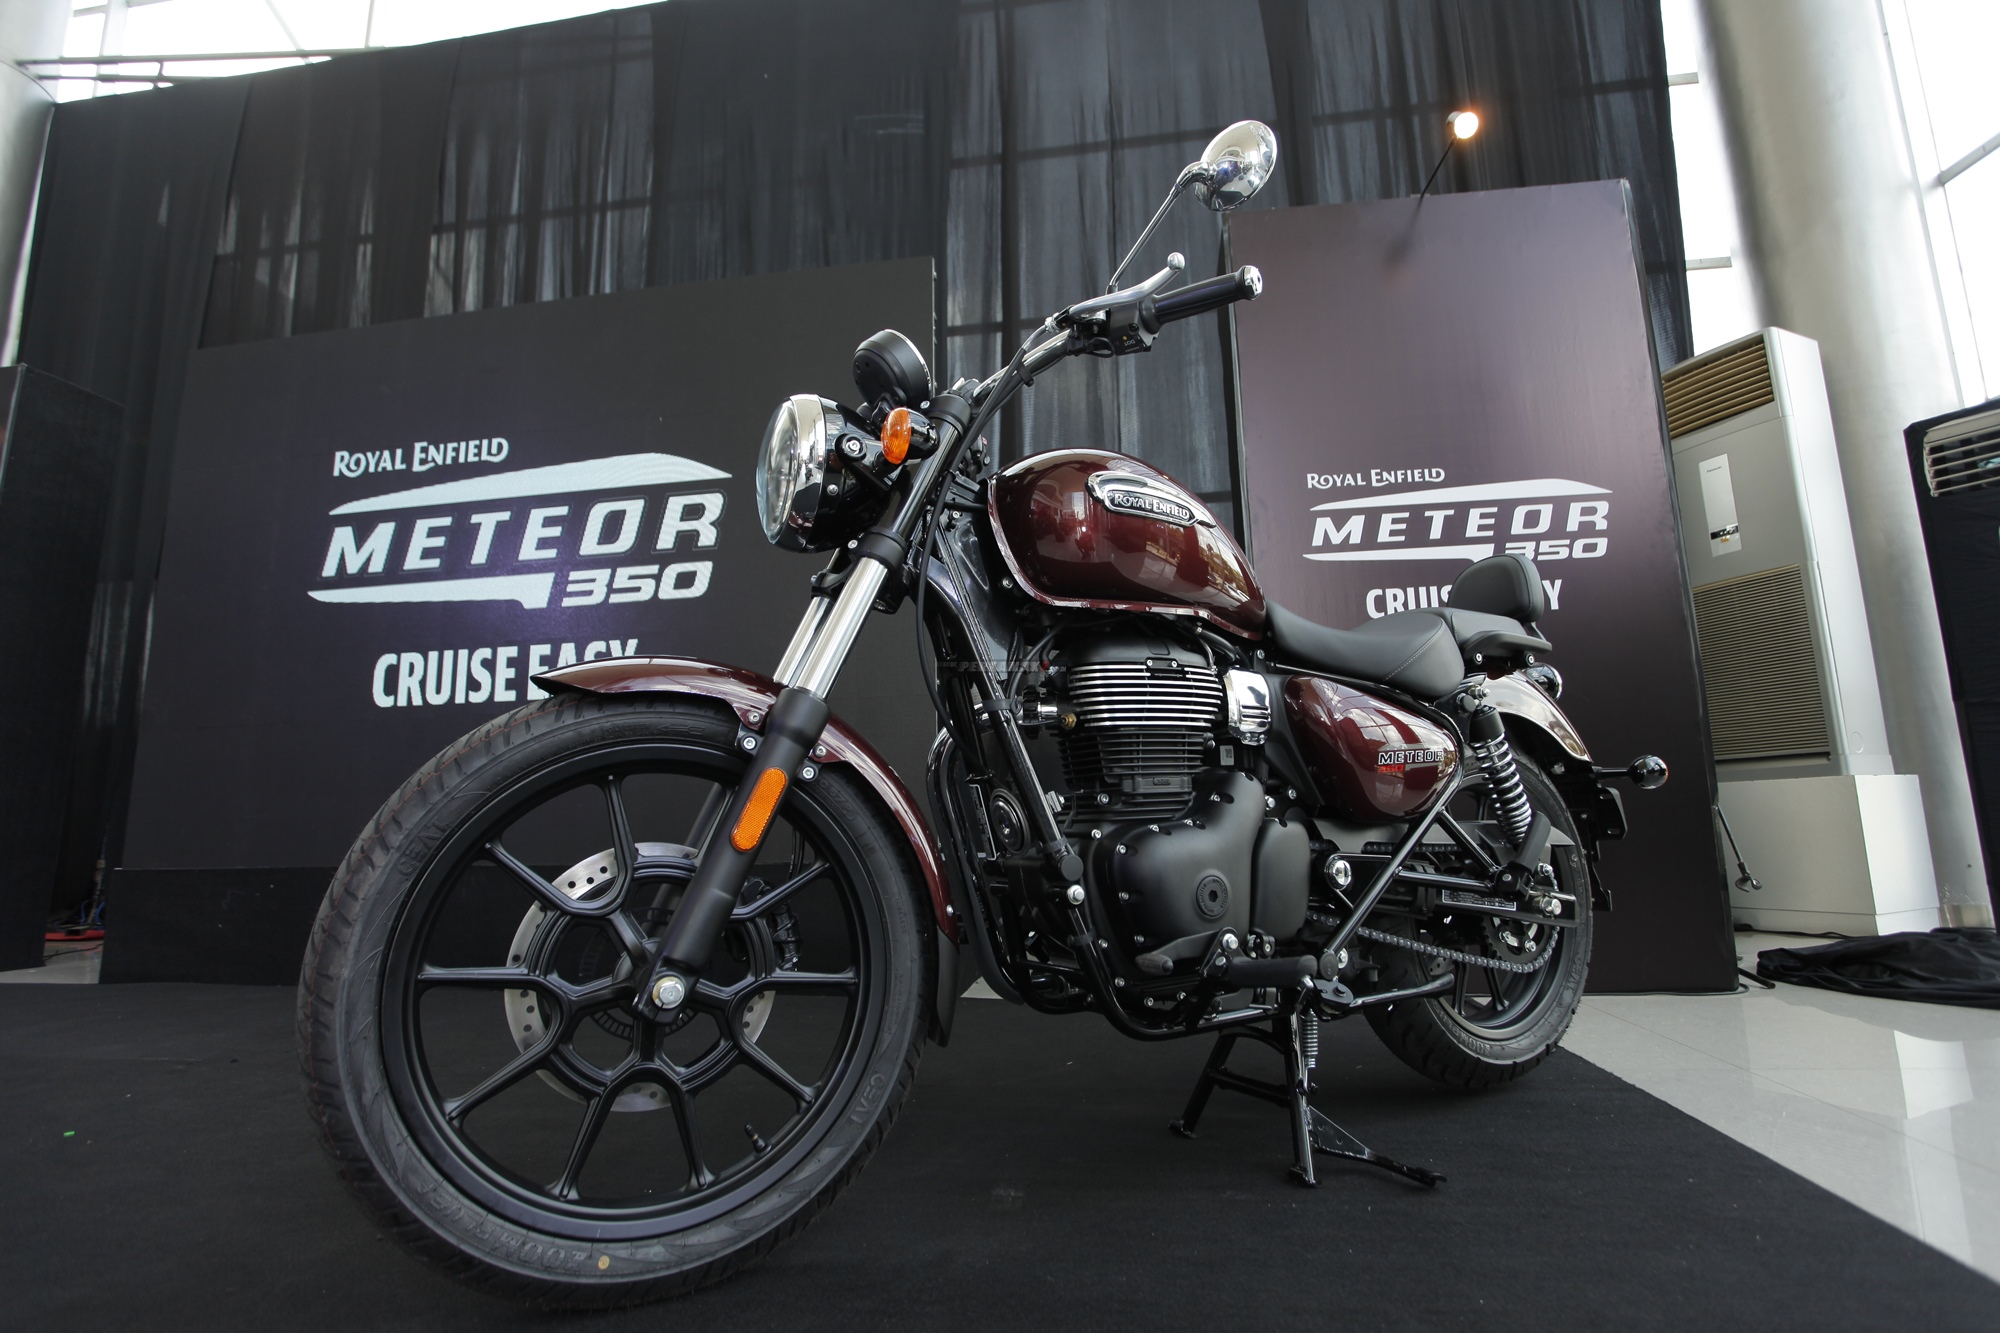 Launching Royal Enfield Meteor 350 Indonesia